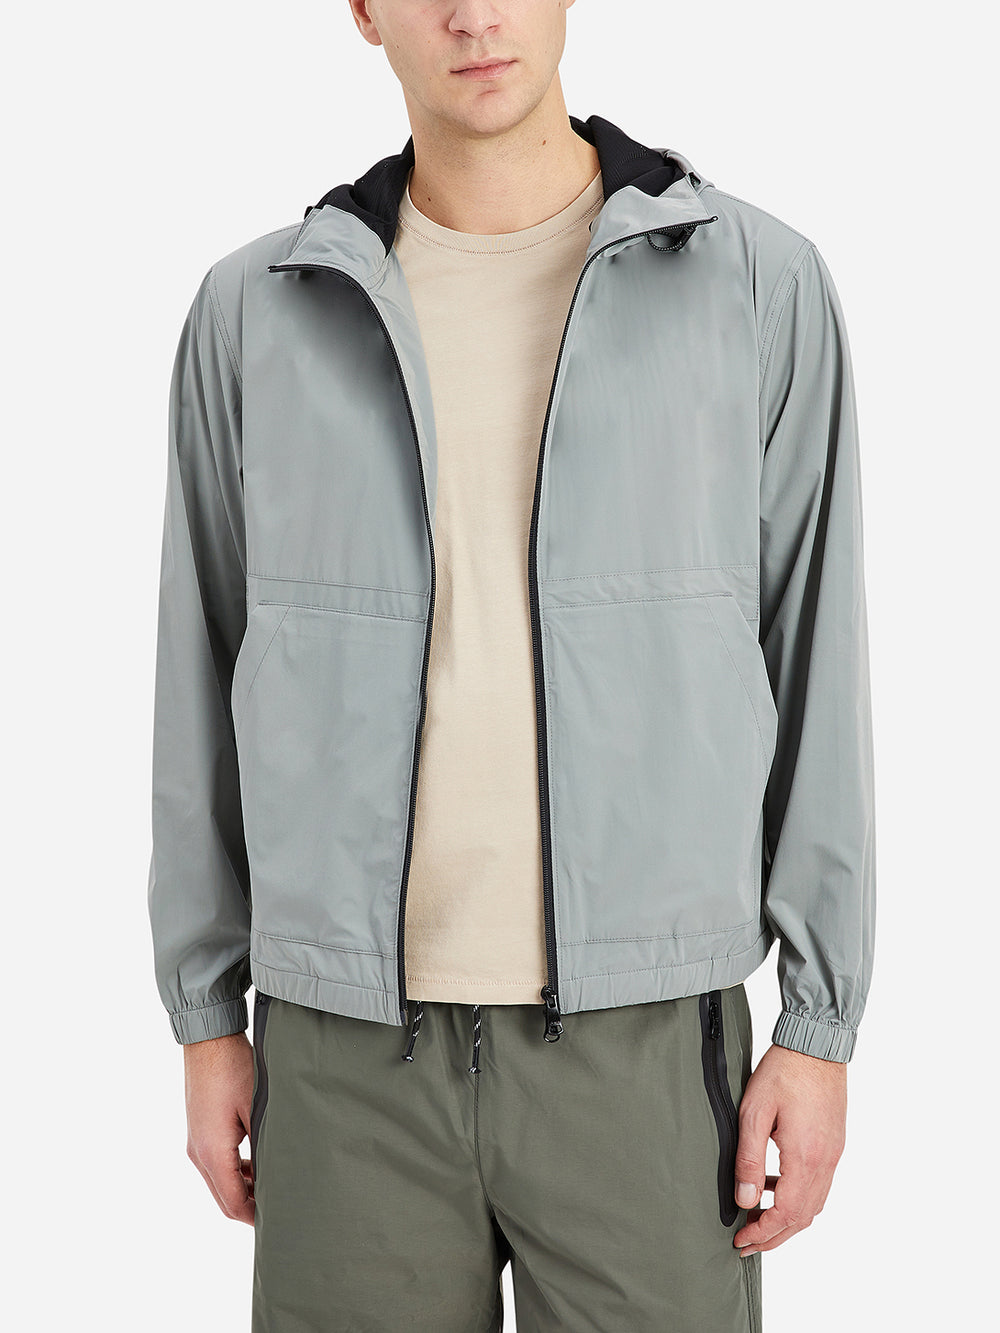 ONS Clothing Men's Lanier Hooded Jacket in Seagrass Green